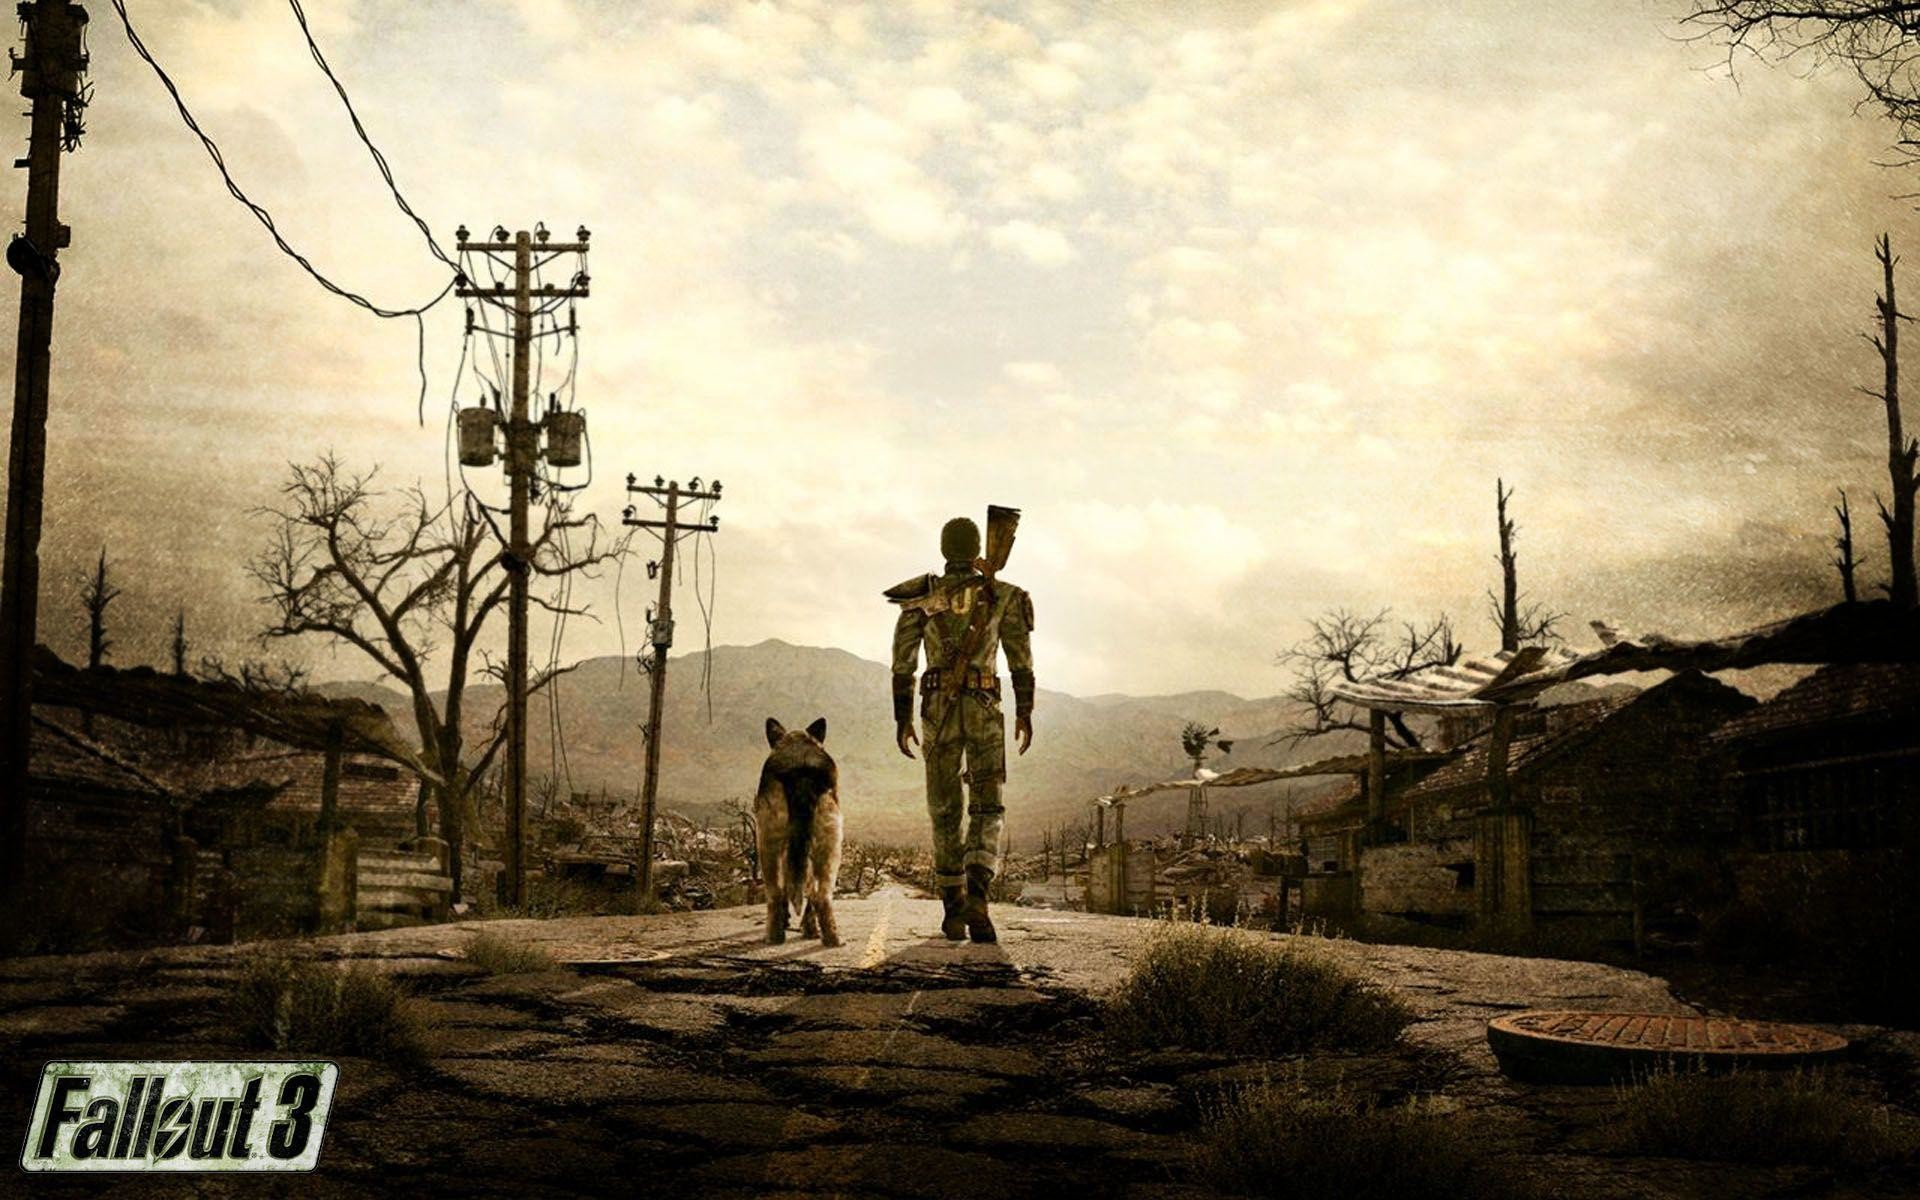 Fallout New Vegas Wallpapers 1080p – Wallpaper Cave